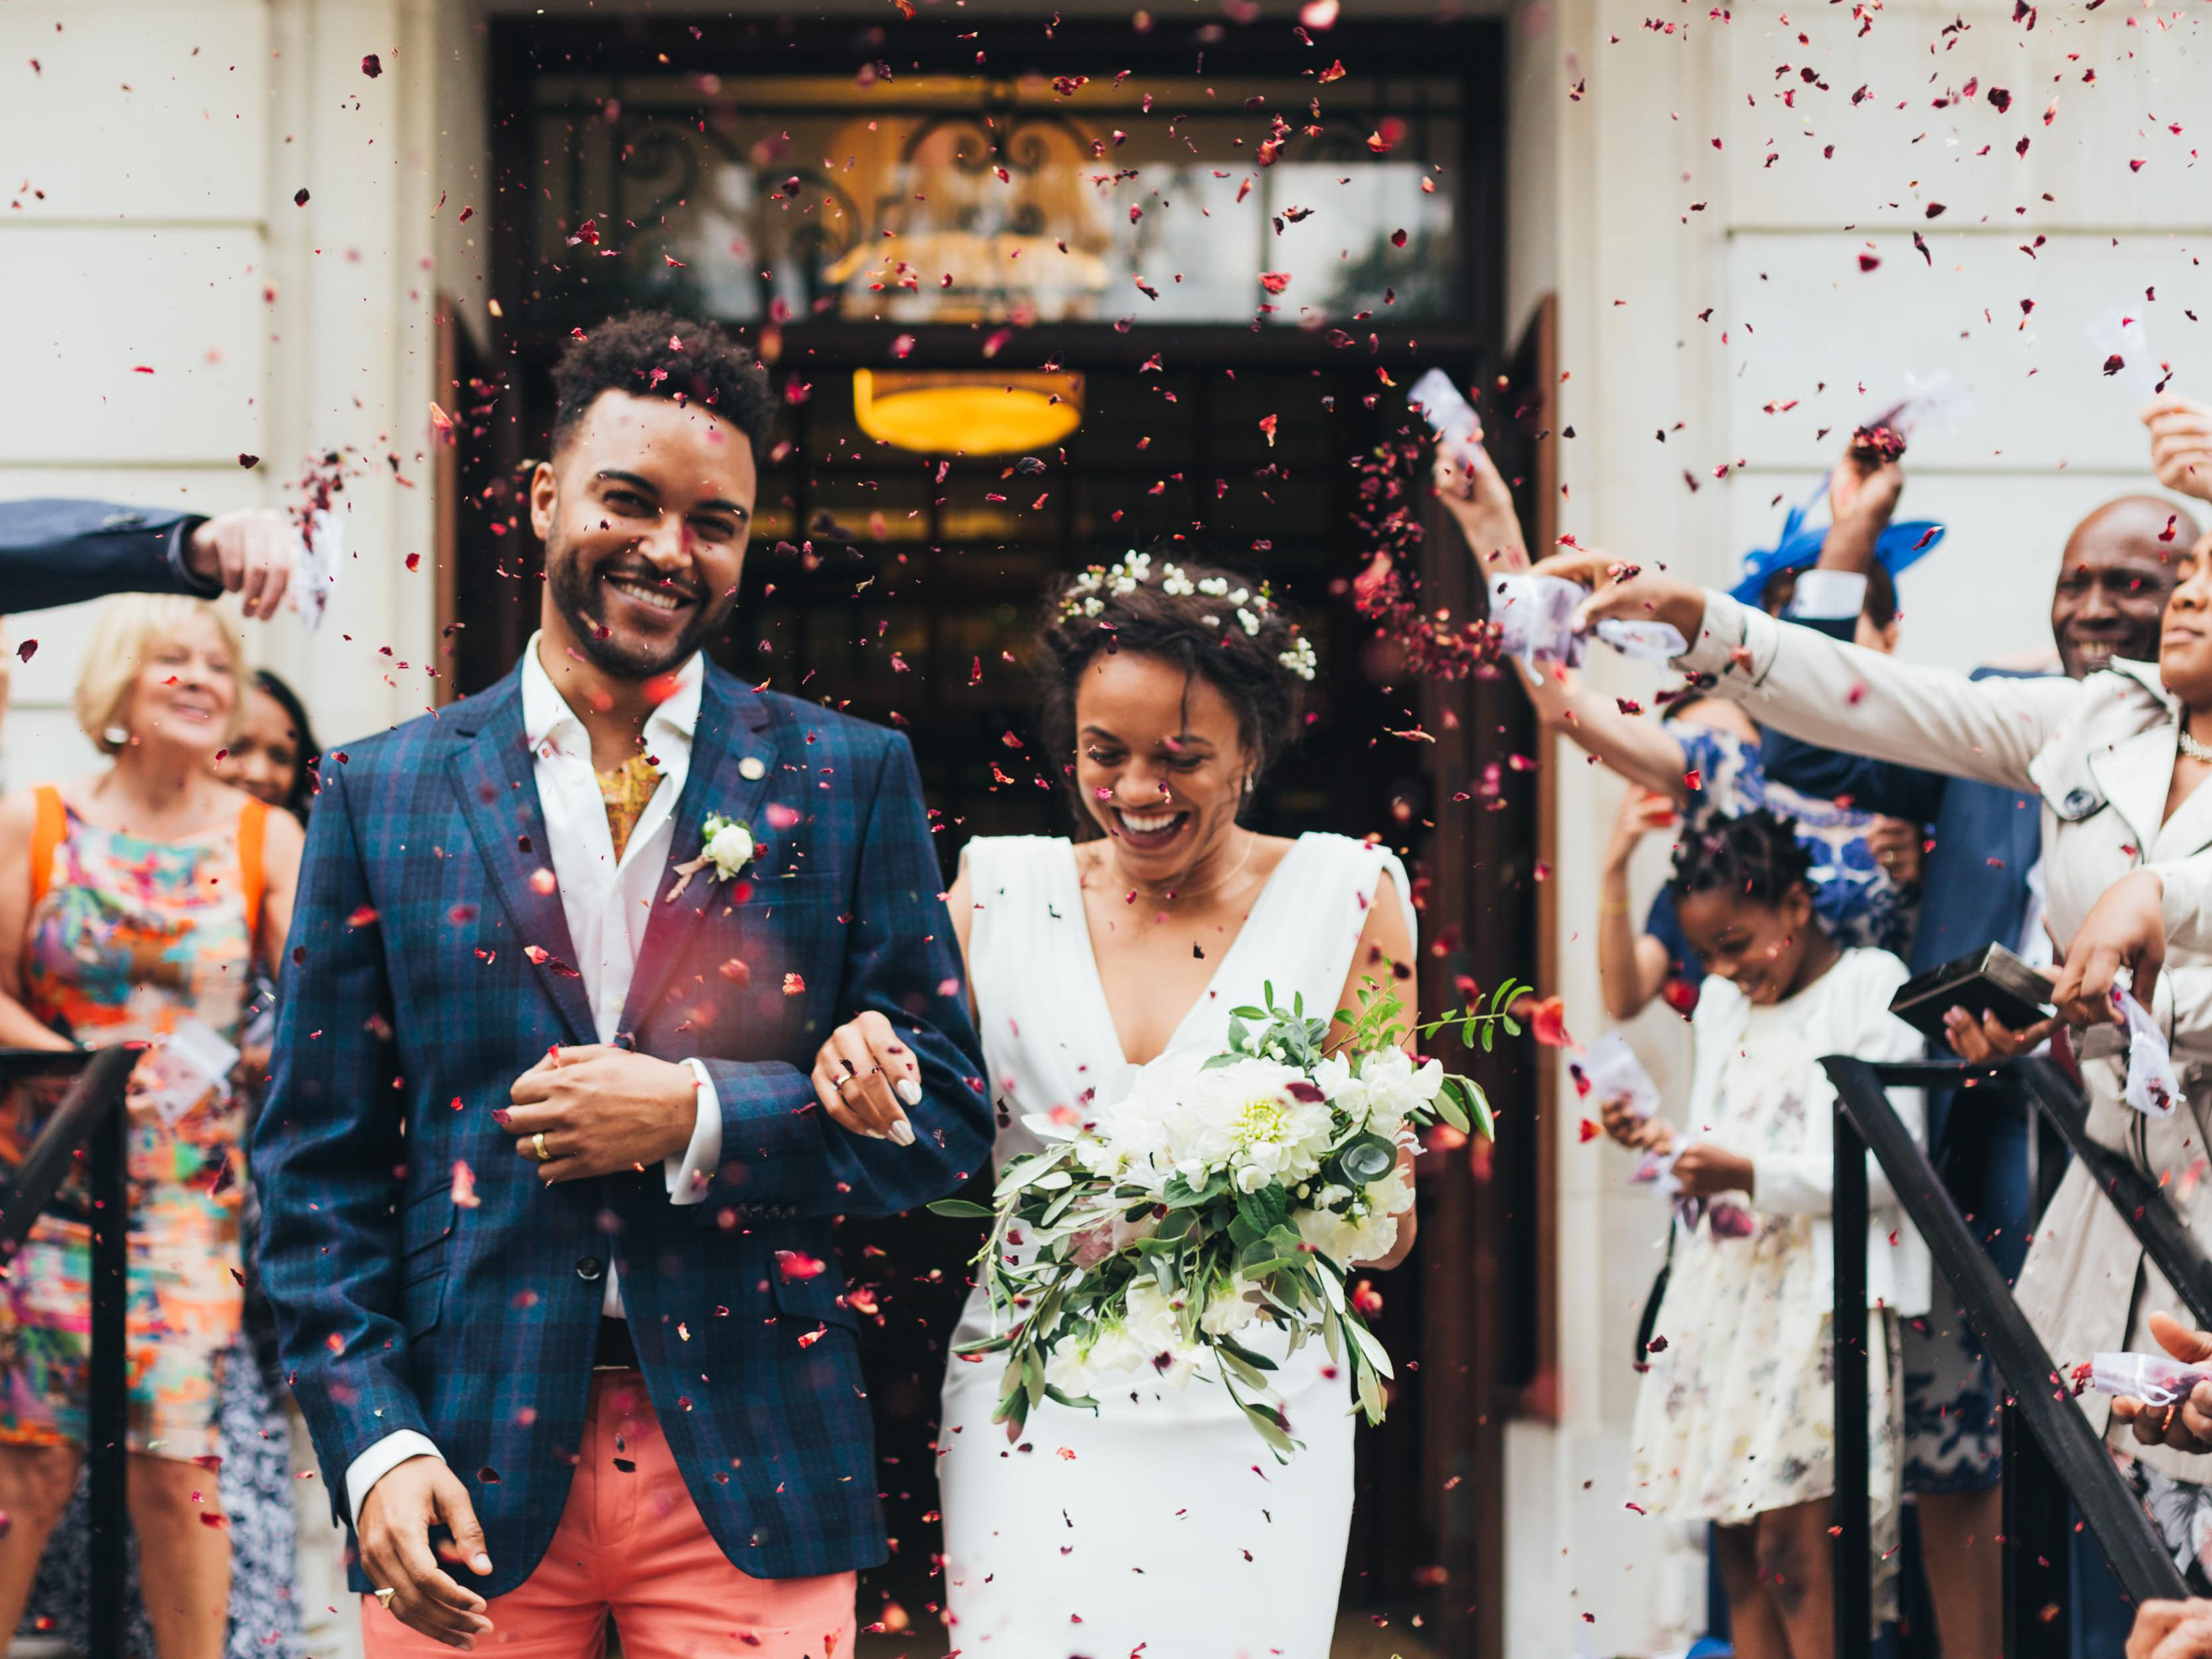 Best Age To Get Married According To Relationship Experts